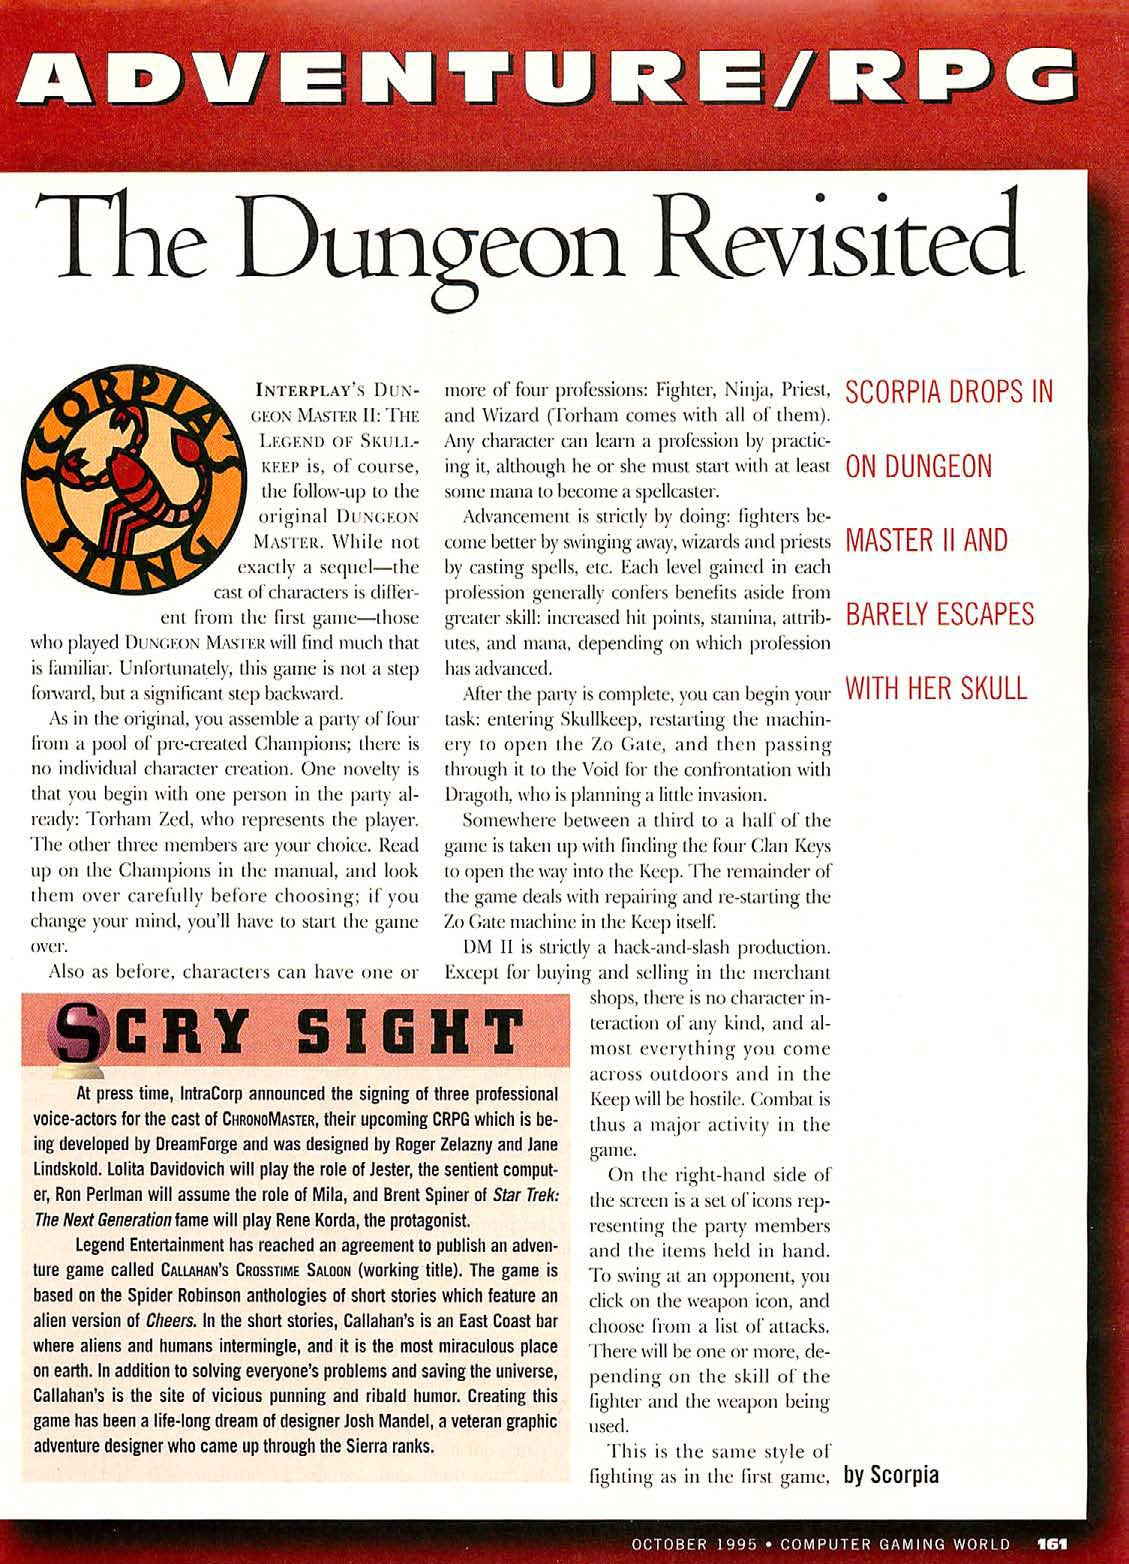 Dungeon Master II for PC Review published in American magazine 'Computer Gaming World', Issue #135 October 1995, Page 161